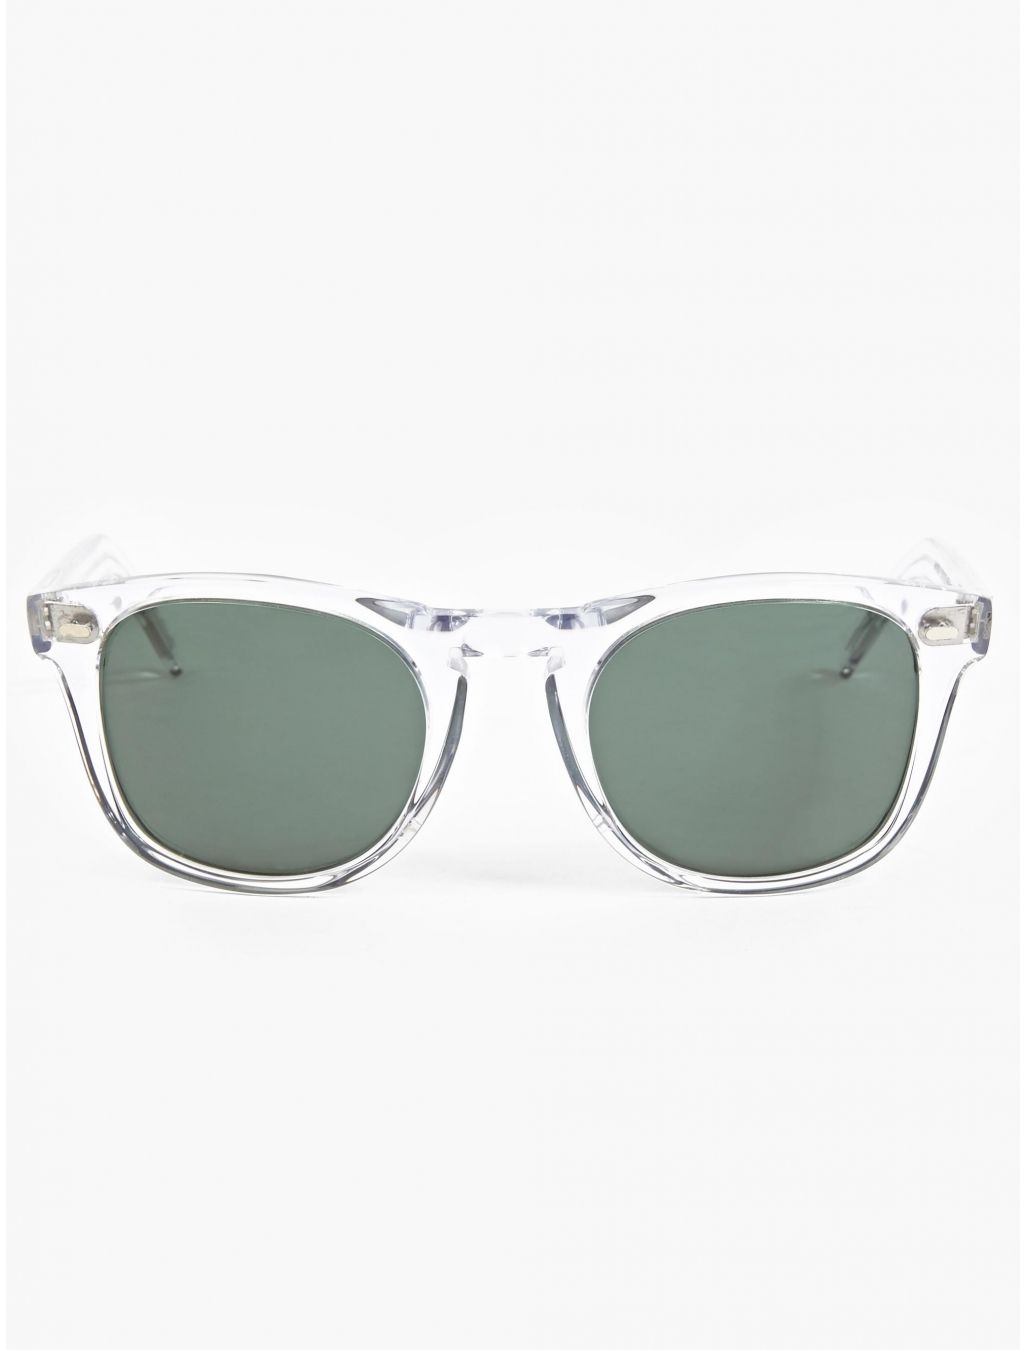 Crystal '1032' Acetate Sunglasses